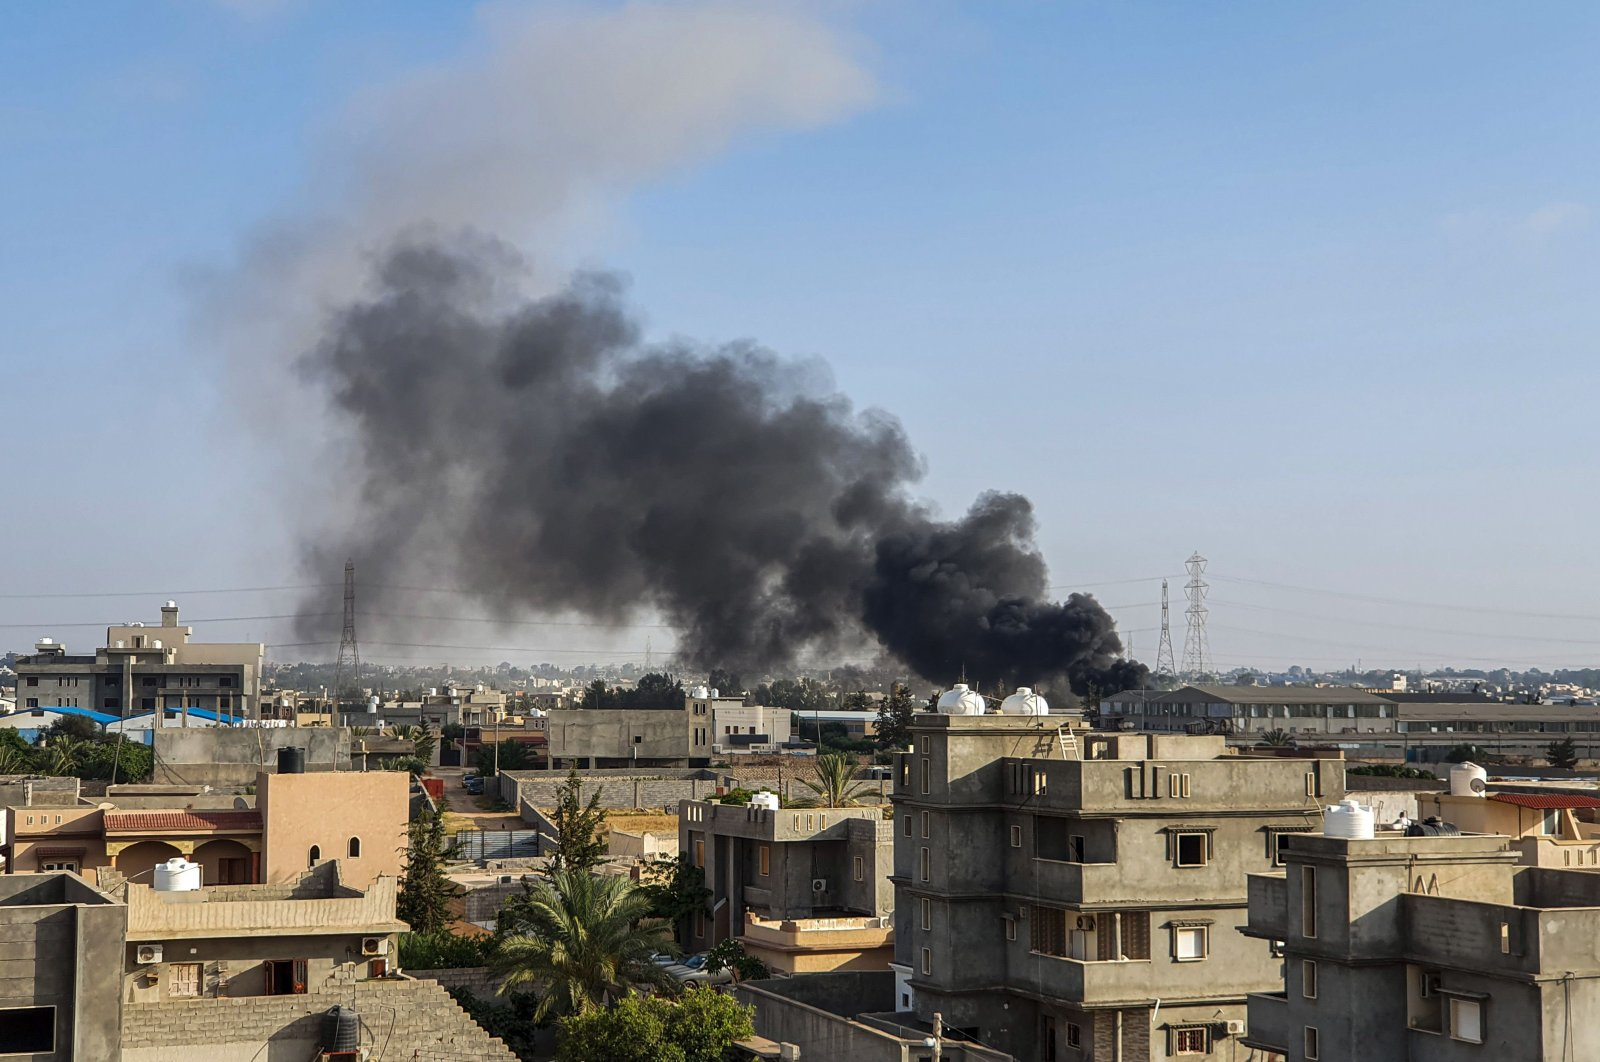 This picture taken on June 29, 2019, shows smoke plumes rising in Tajoura, south of the Libyan capital Tripoli, following a reported airstrike by forces loyal to warlord Khalifa Haftar. (AFP Photo)